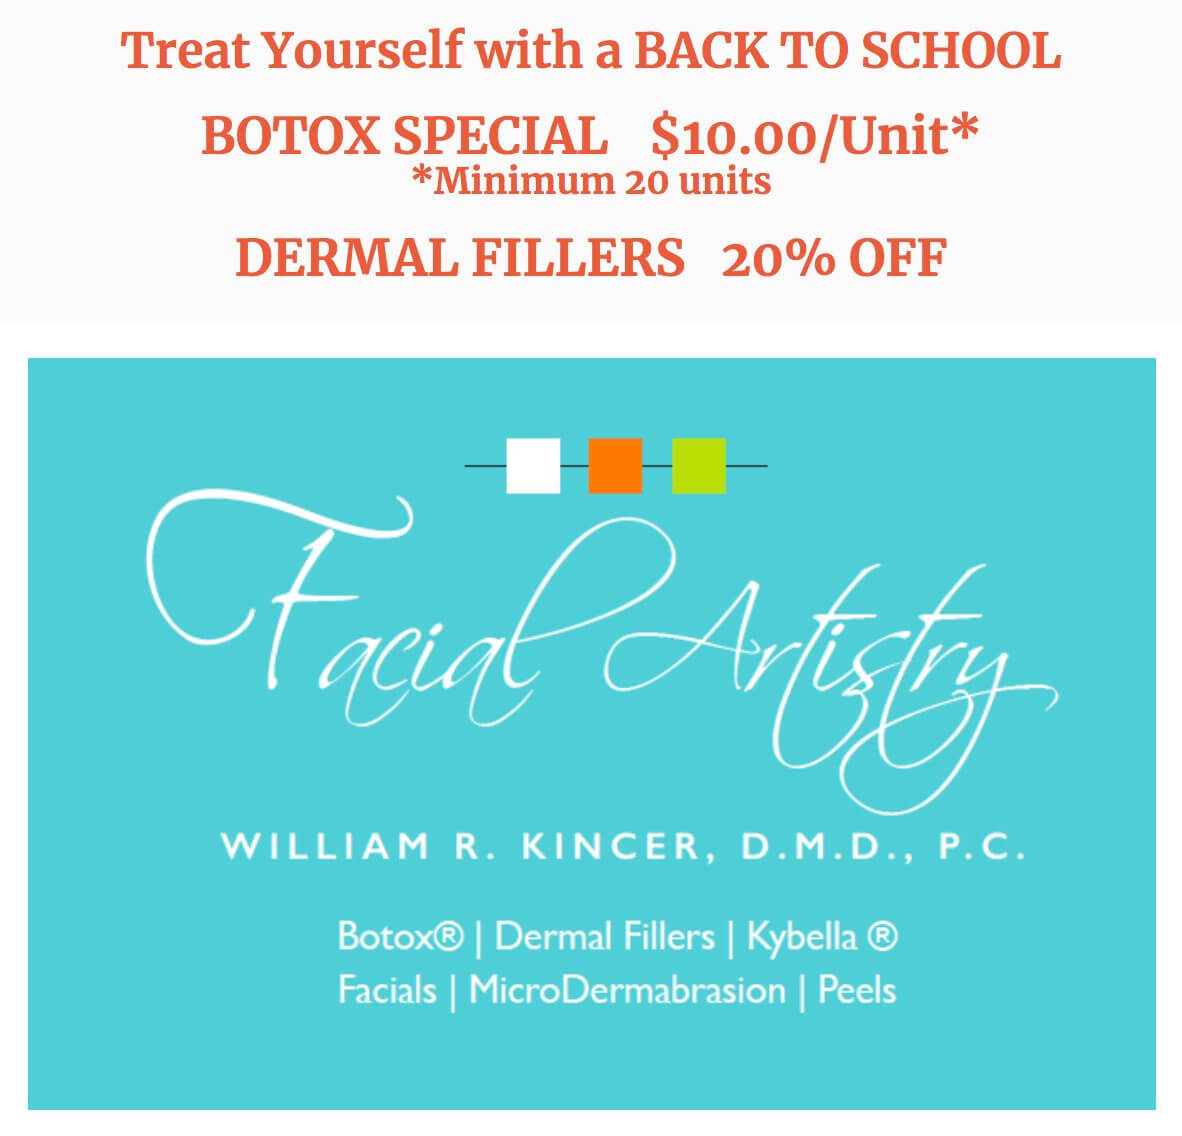 Treat Yourself with a BACK TO SCHOOL BOTOX SPECIAL $10.00/Unit* *Minimum 20 units DERMAL FILLERS 20% OFF